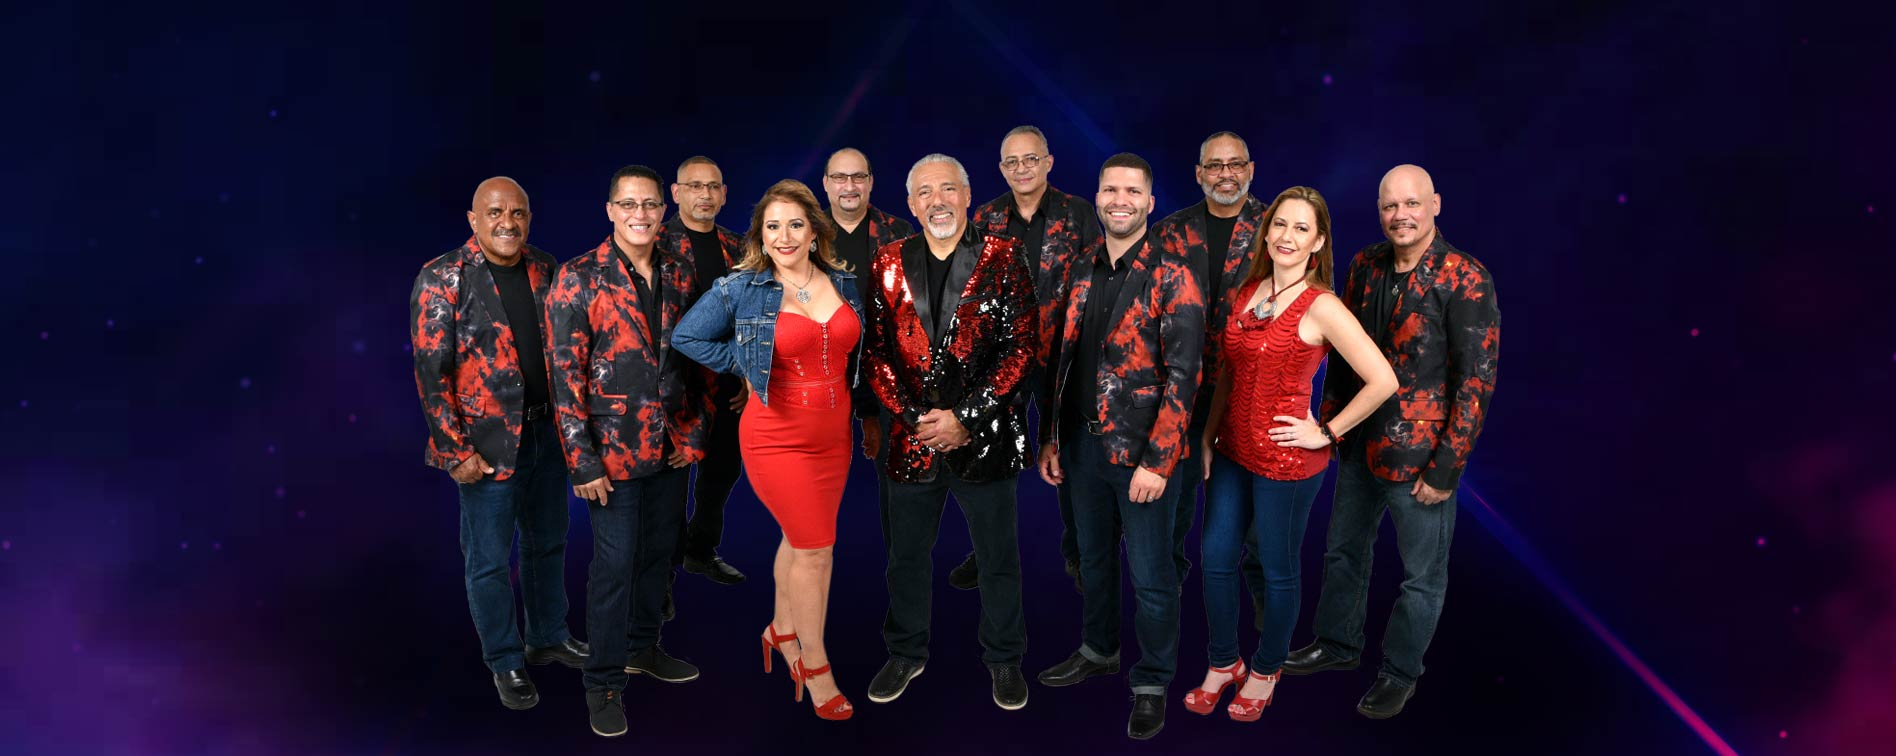 orchestra-fuego-band-photo-new-2020